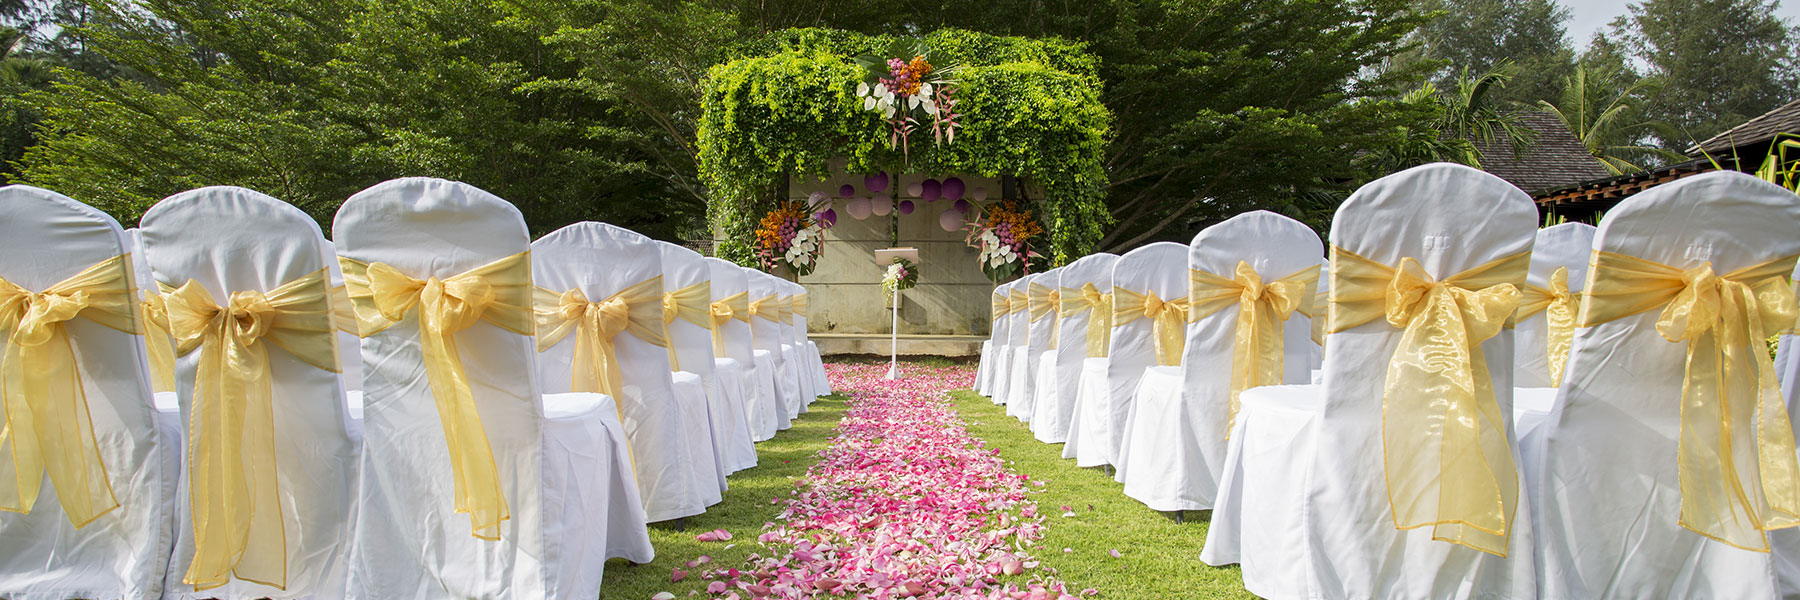 rentals size rental tables chairs francisco wedding classic medium near san outdoor and party of chair table me cheap